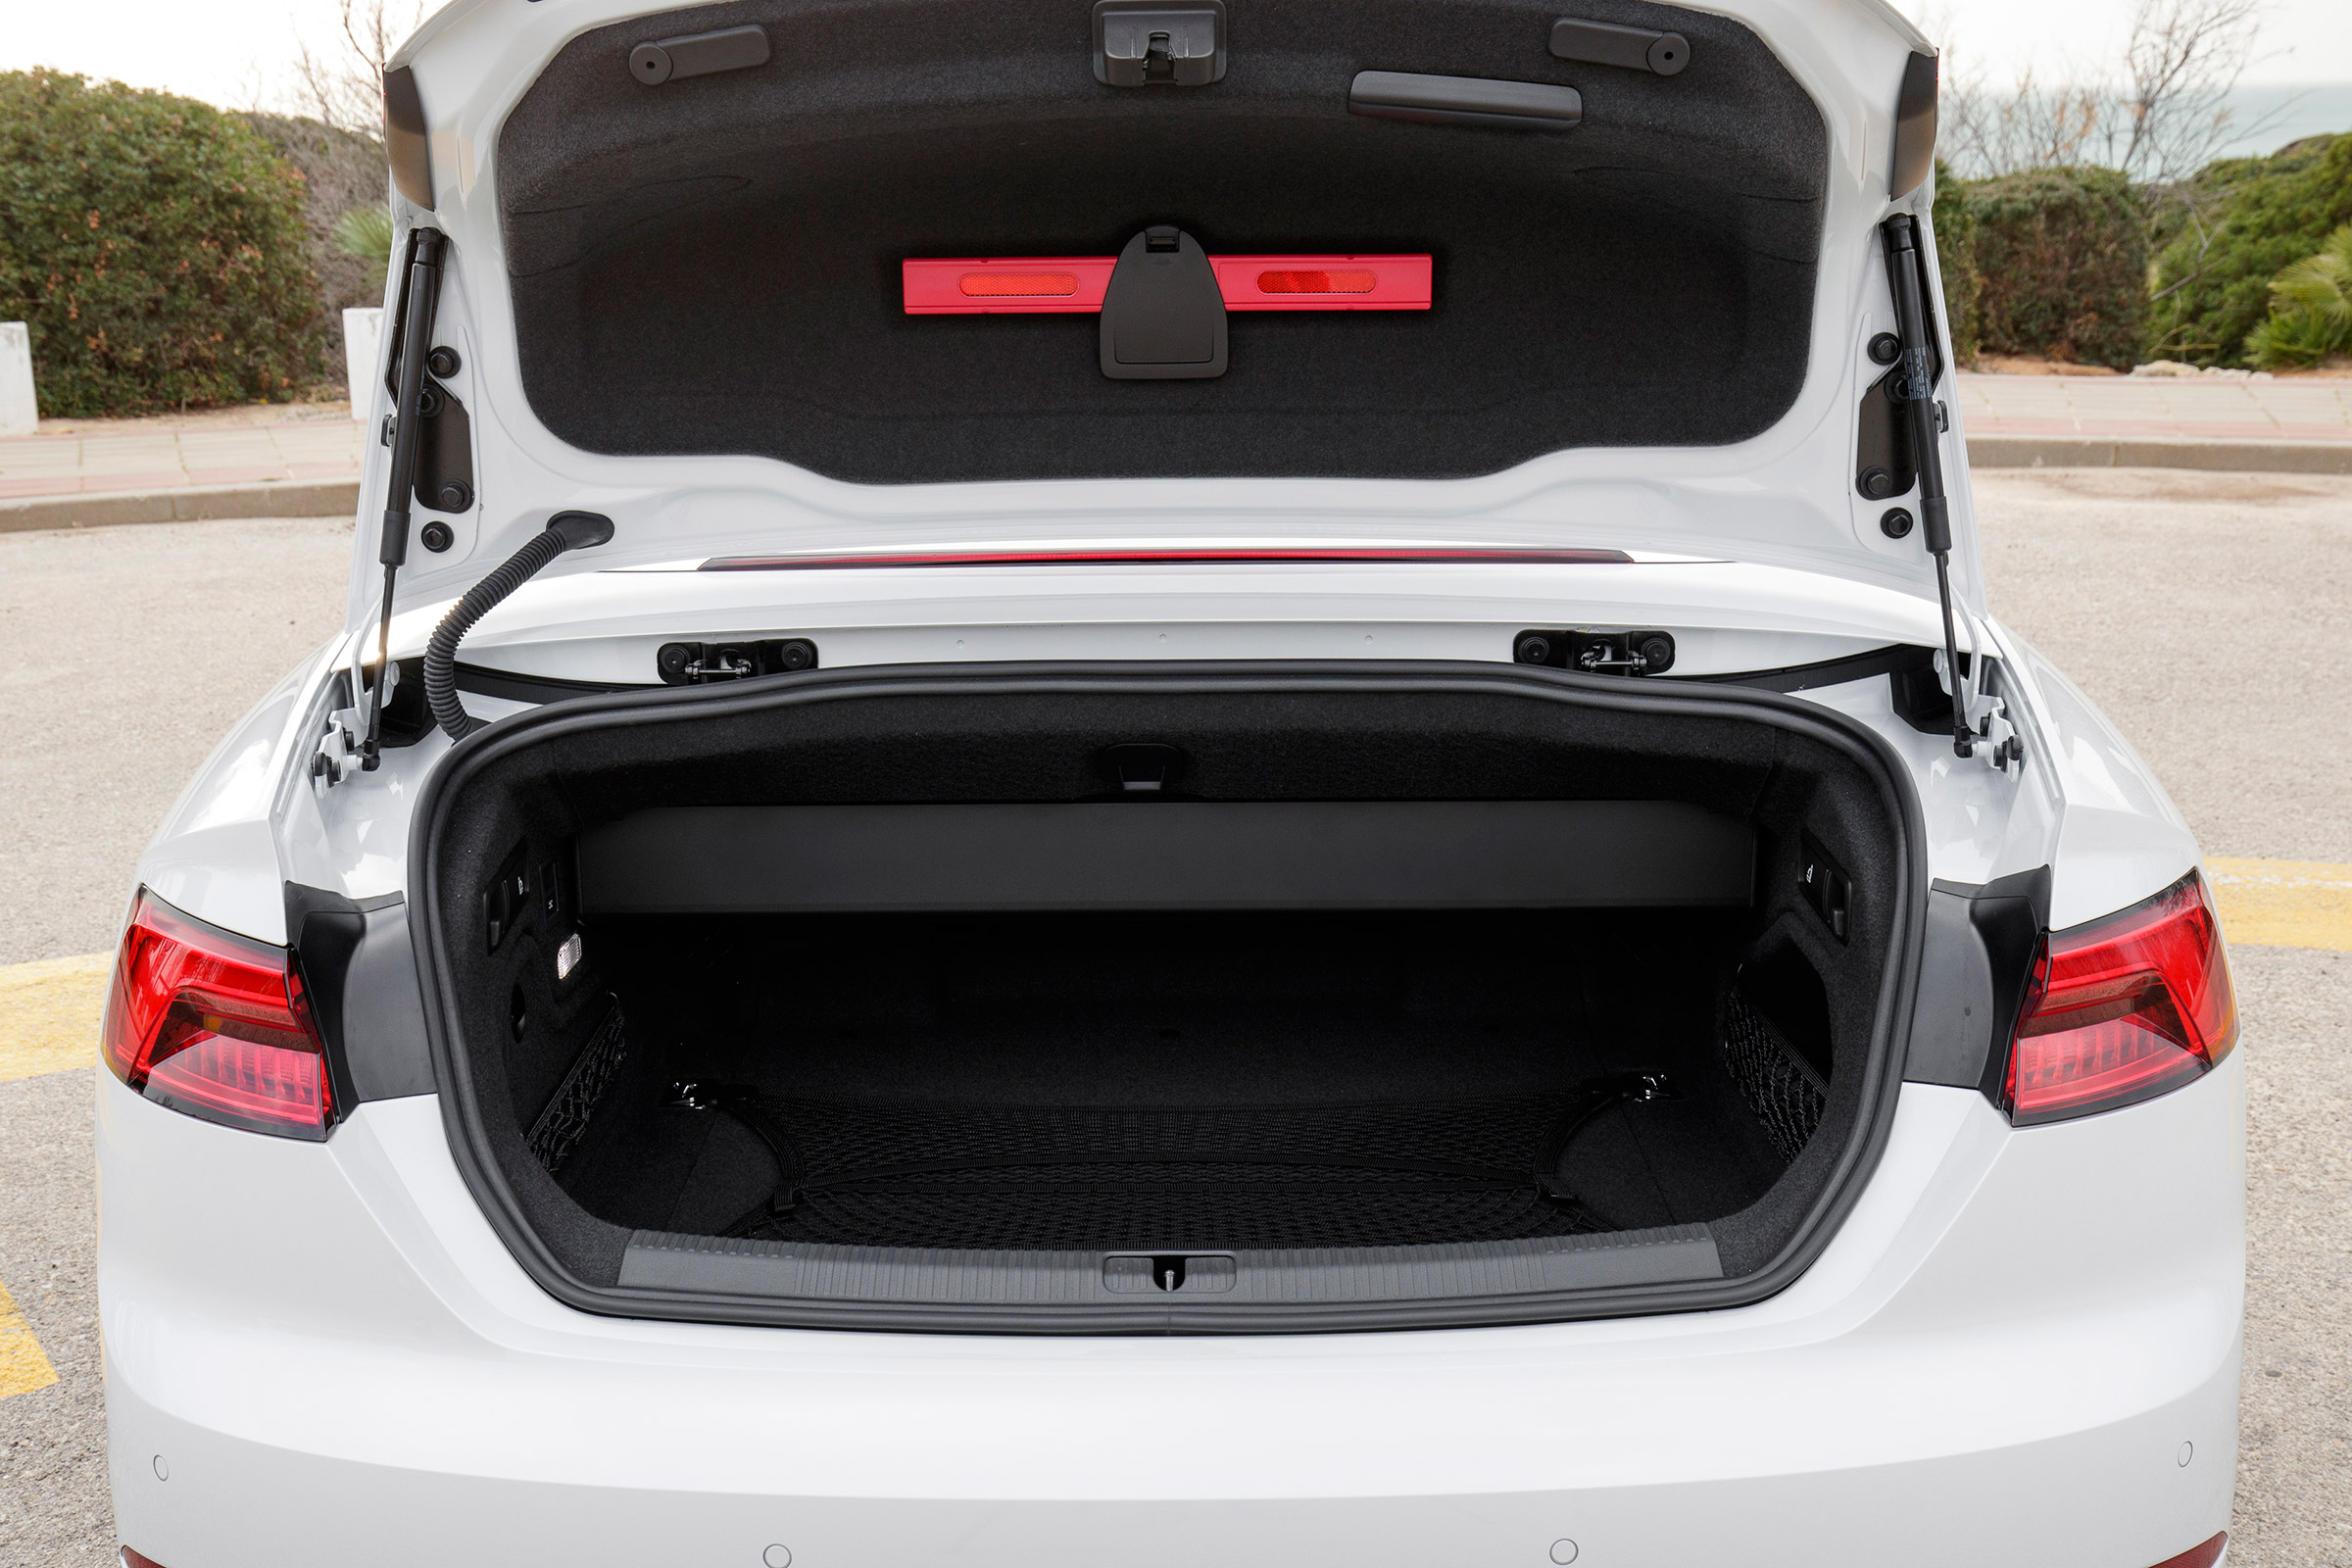 2017 Audi A5 Cabriolet Interior View Cargo Trunk (Photo 10 of 18)